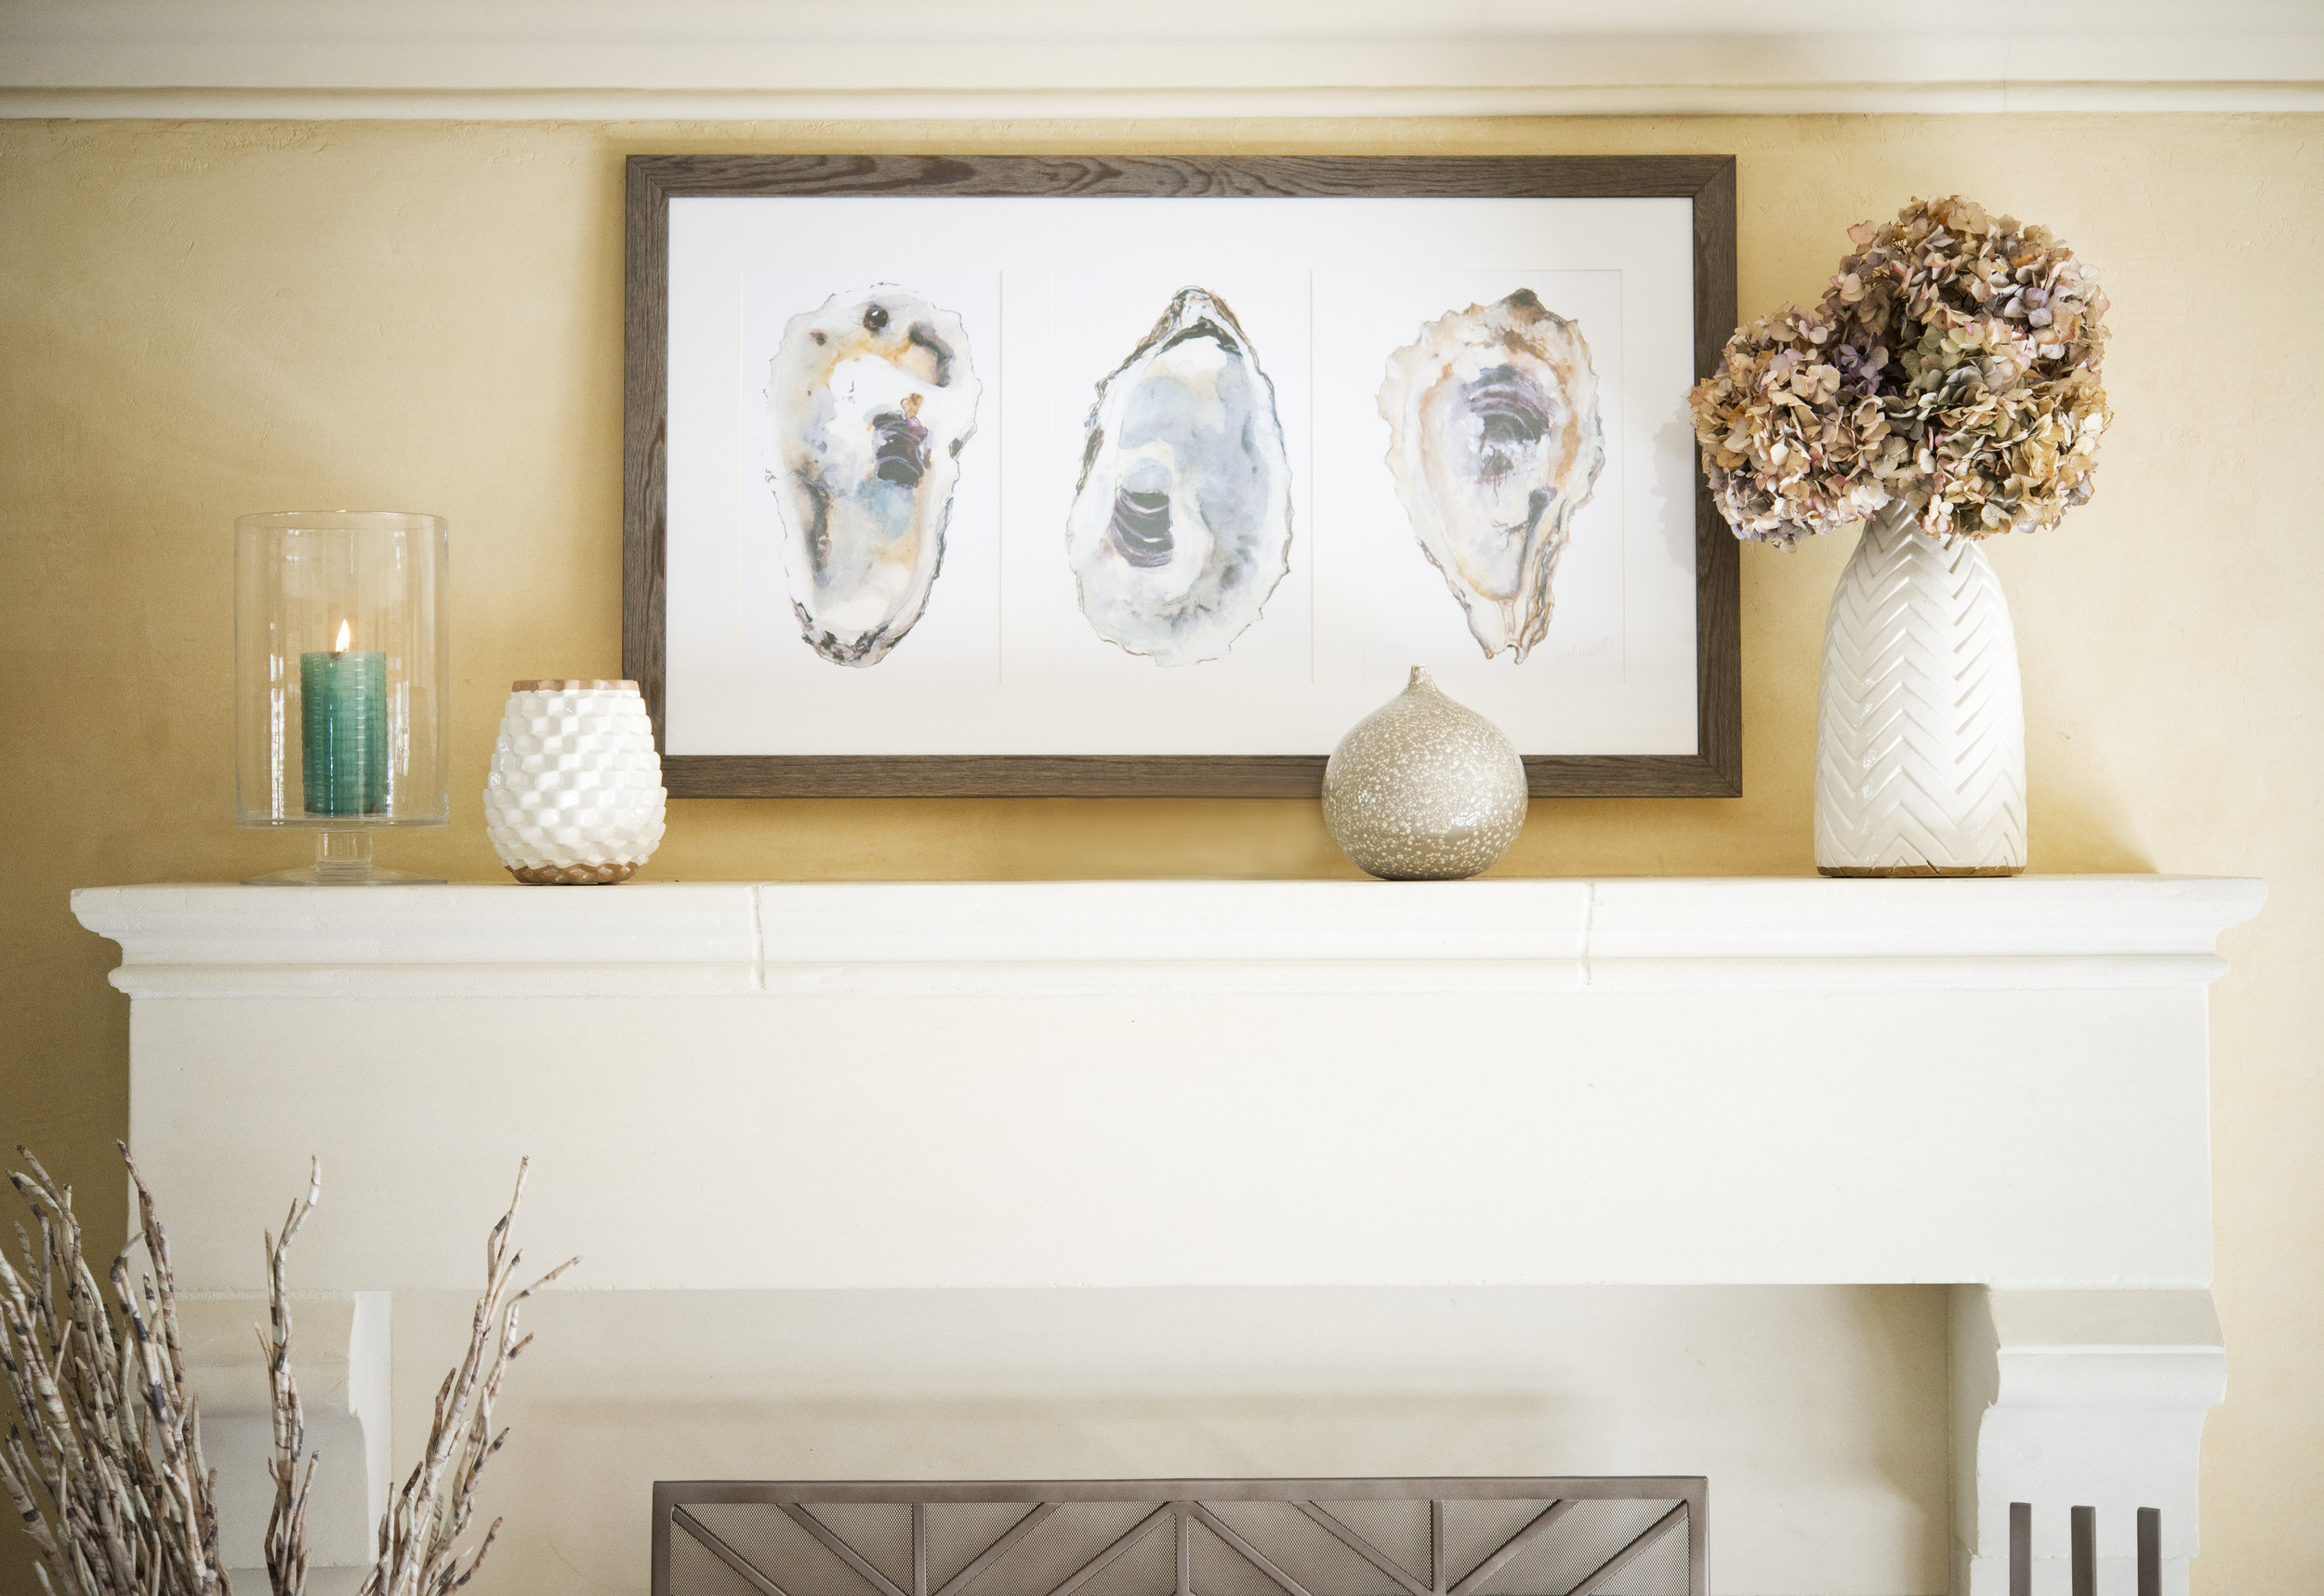 My Splendid Living partnered with Crate & Barrel for a casual Fireplace Display! #cratestyle